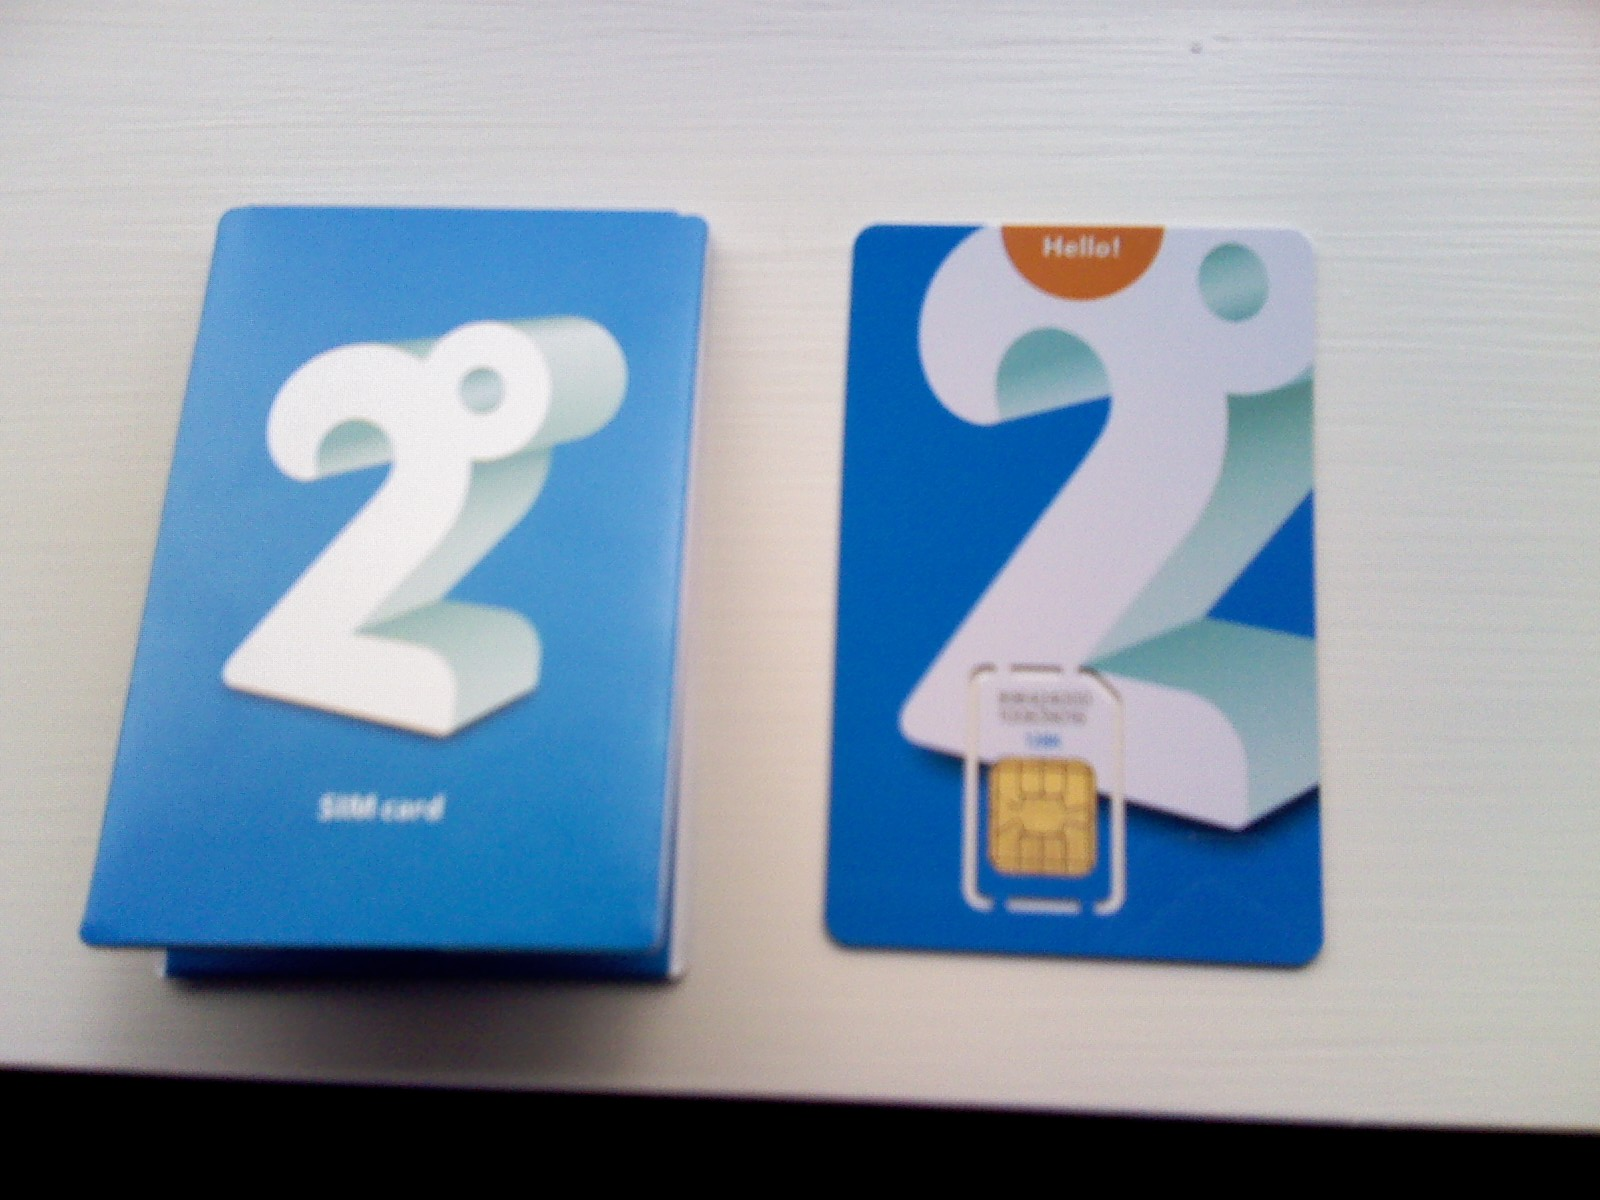 2 degrees prepaid sim card new zealand